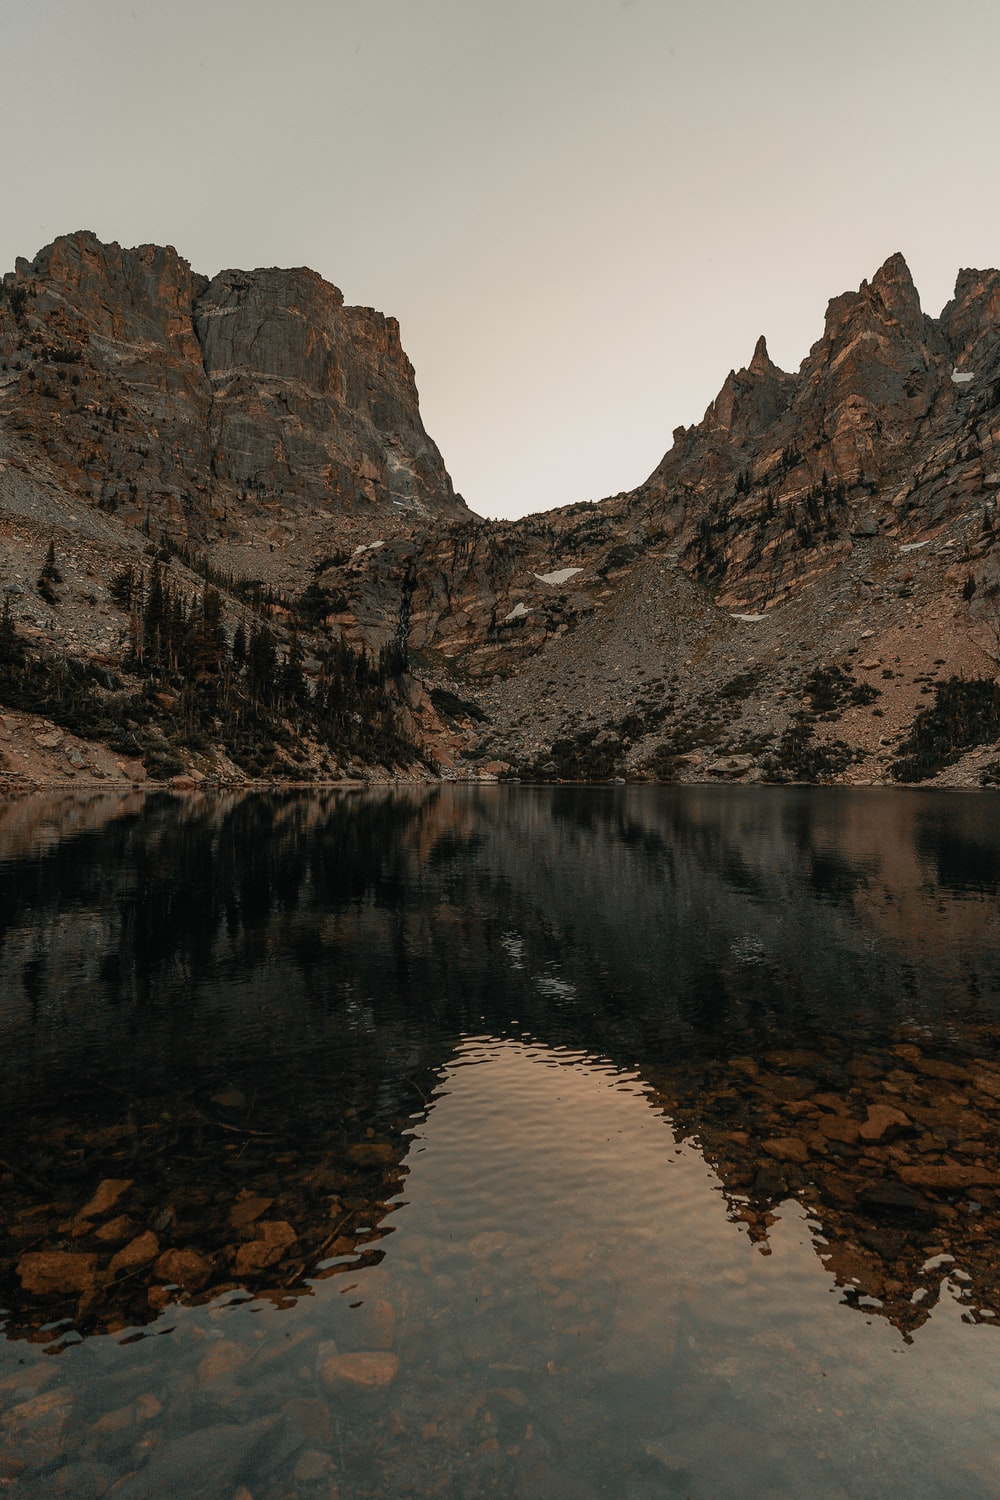 landscape photography of brown and black mountain ranges behind body of water